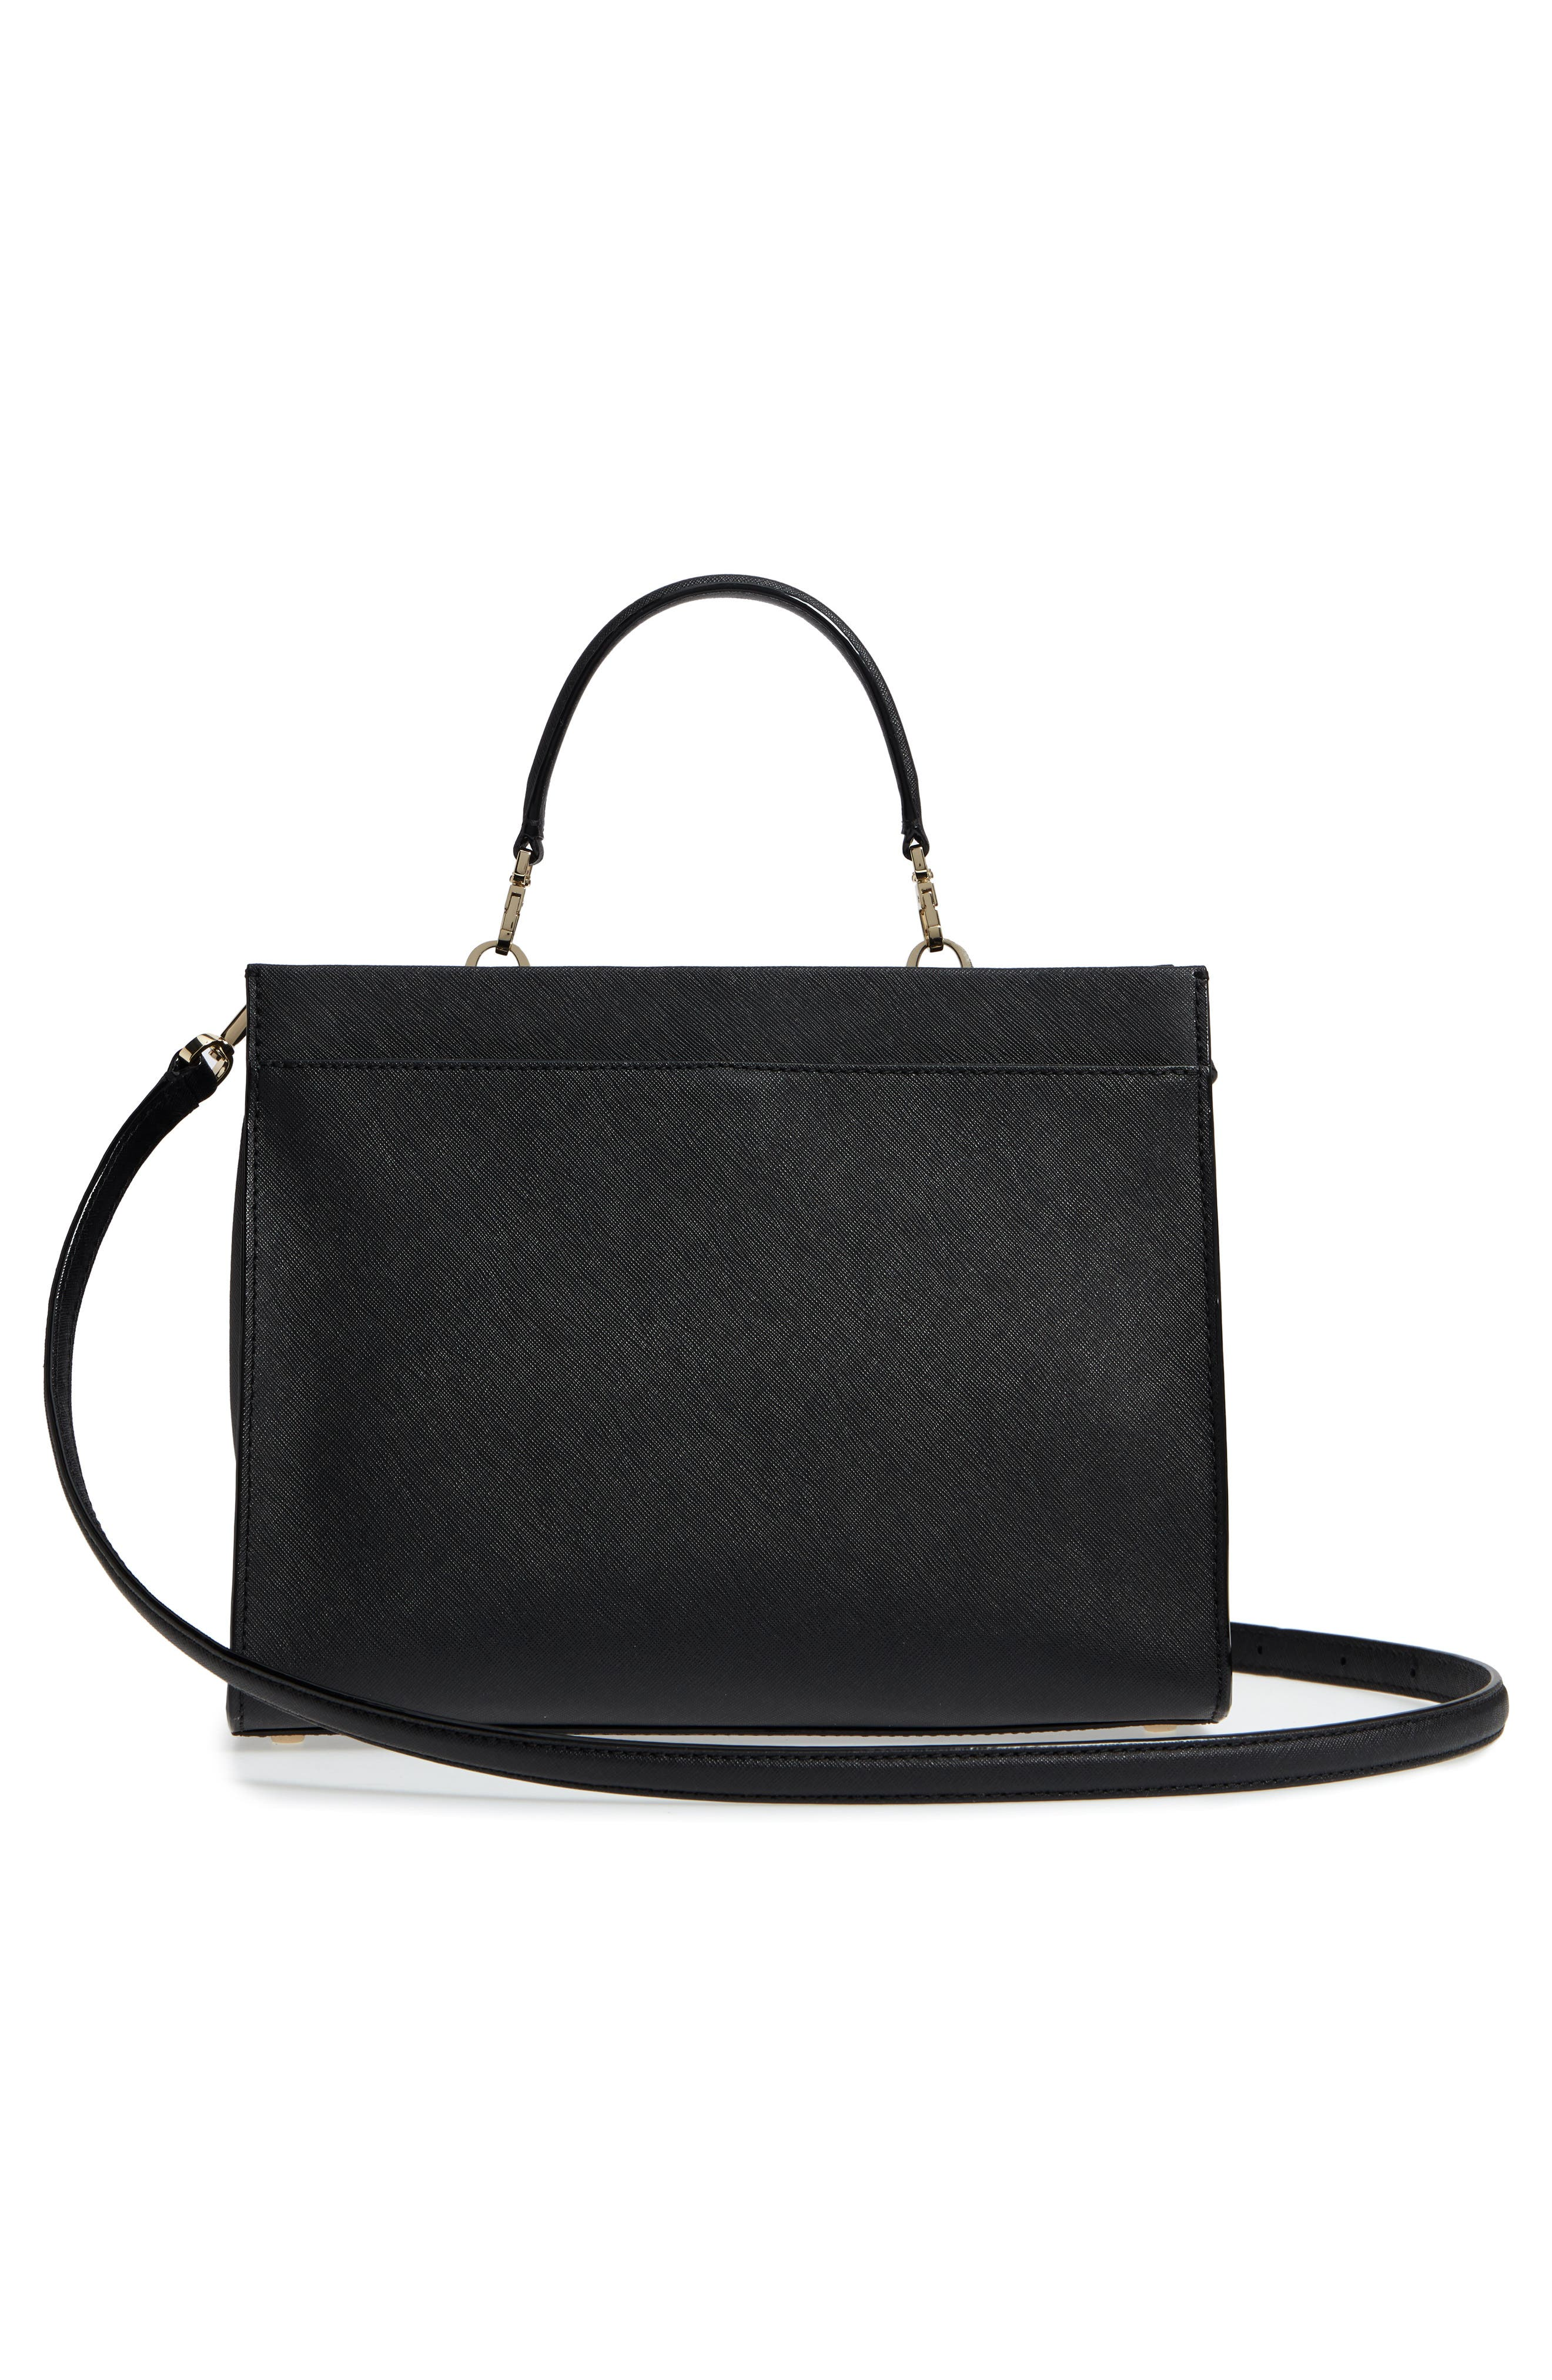 cameron street - sara leather satchel,                             Alternate thumbnail 3, color,                             Black